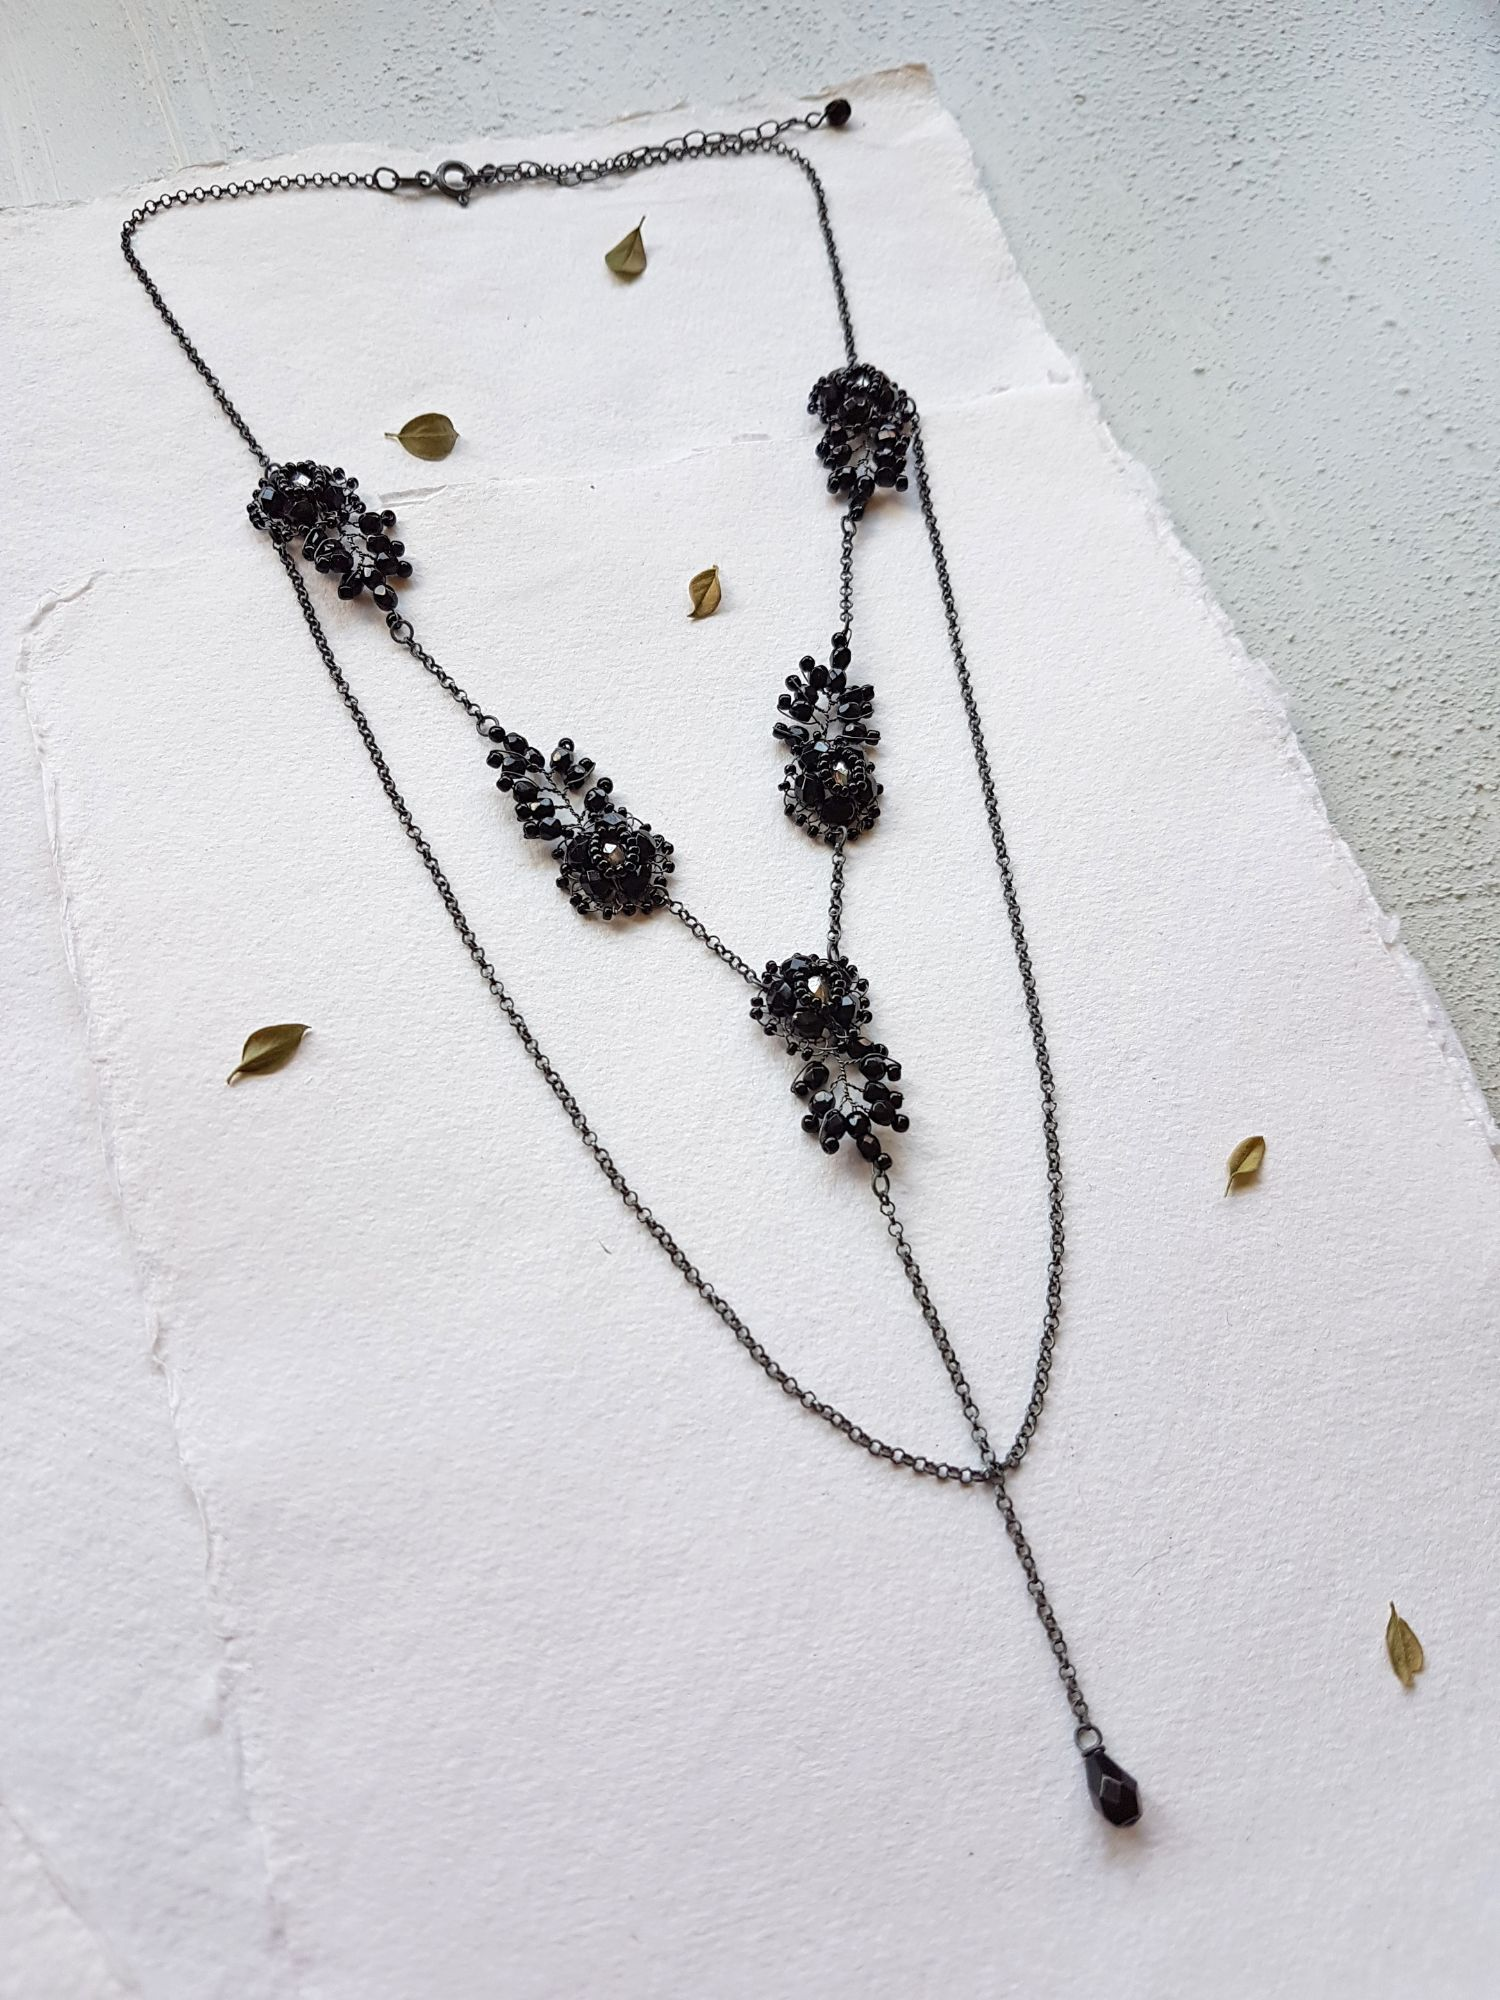 Statemnet necklace by Judith Brown